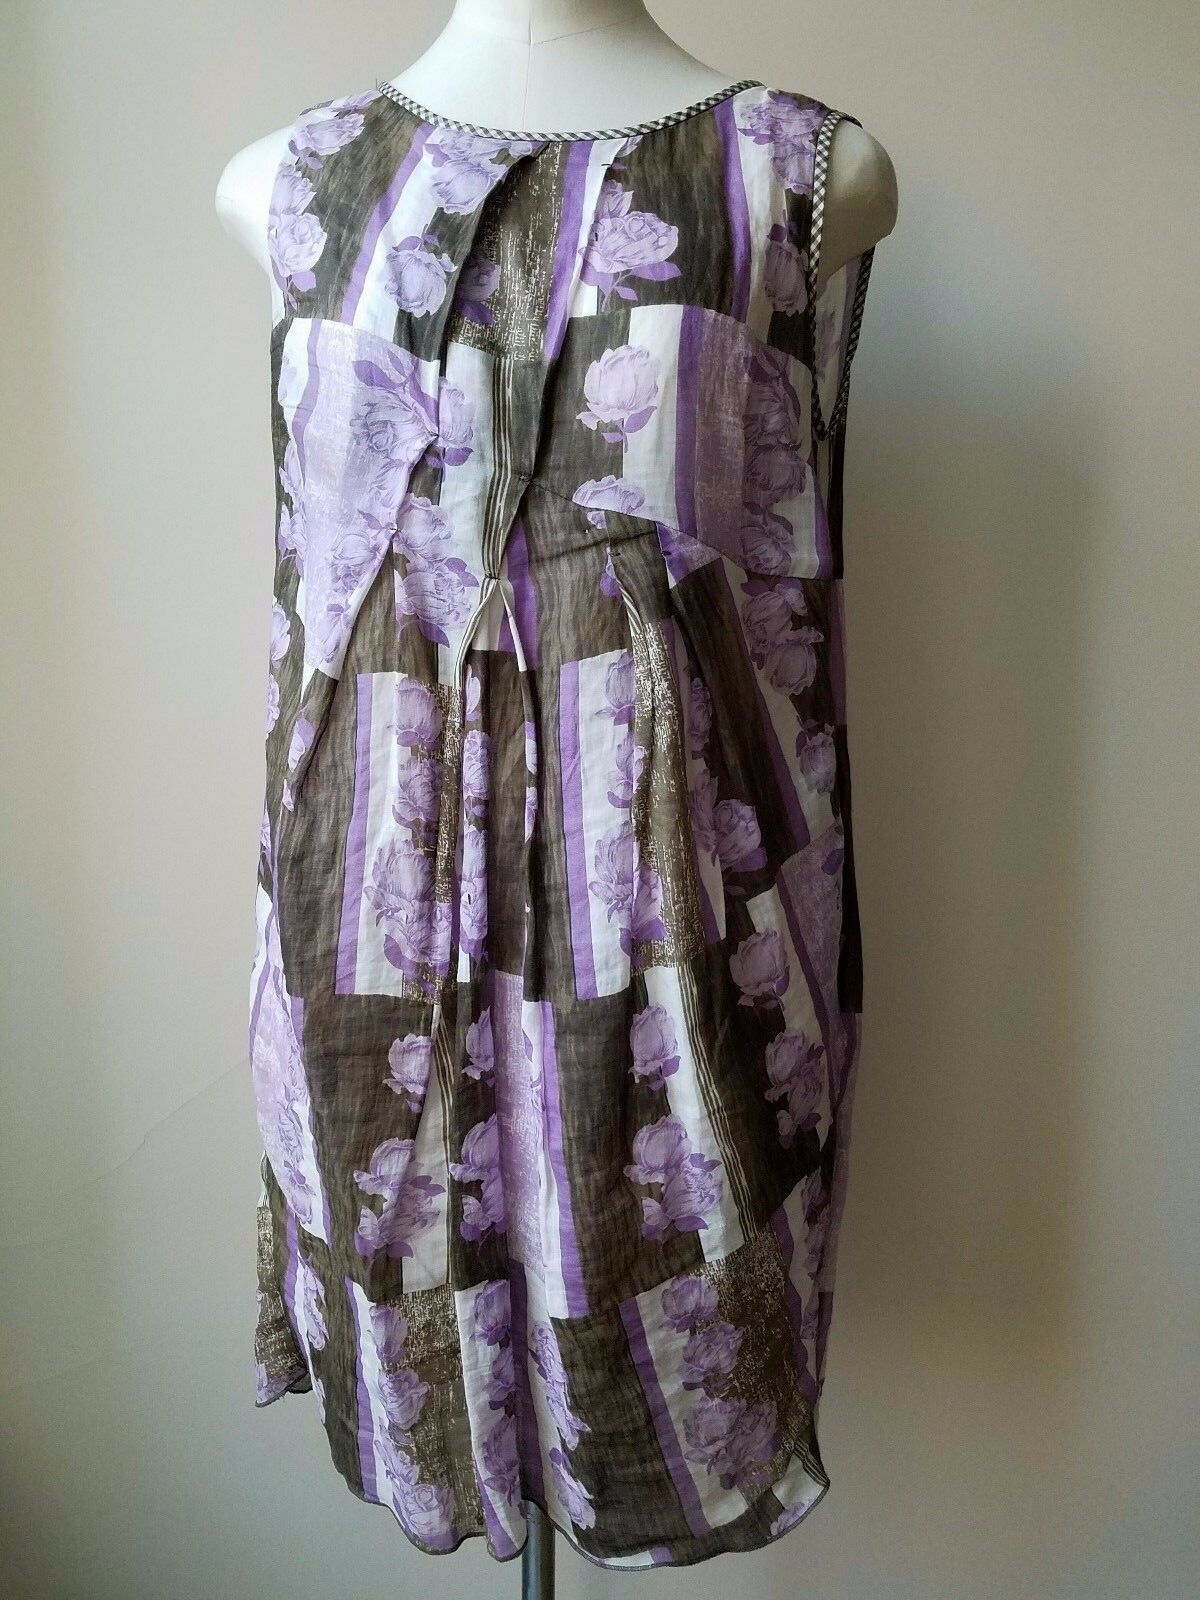 Sportmax 100% silk purple brown and white painted sleeveless dress US 12